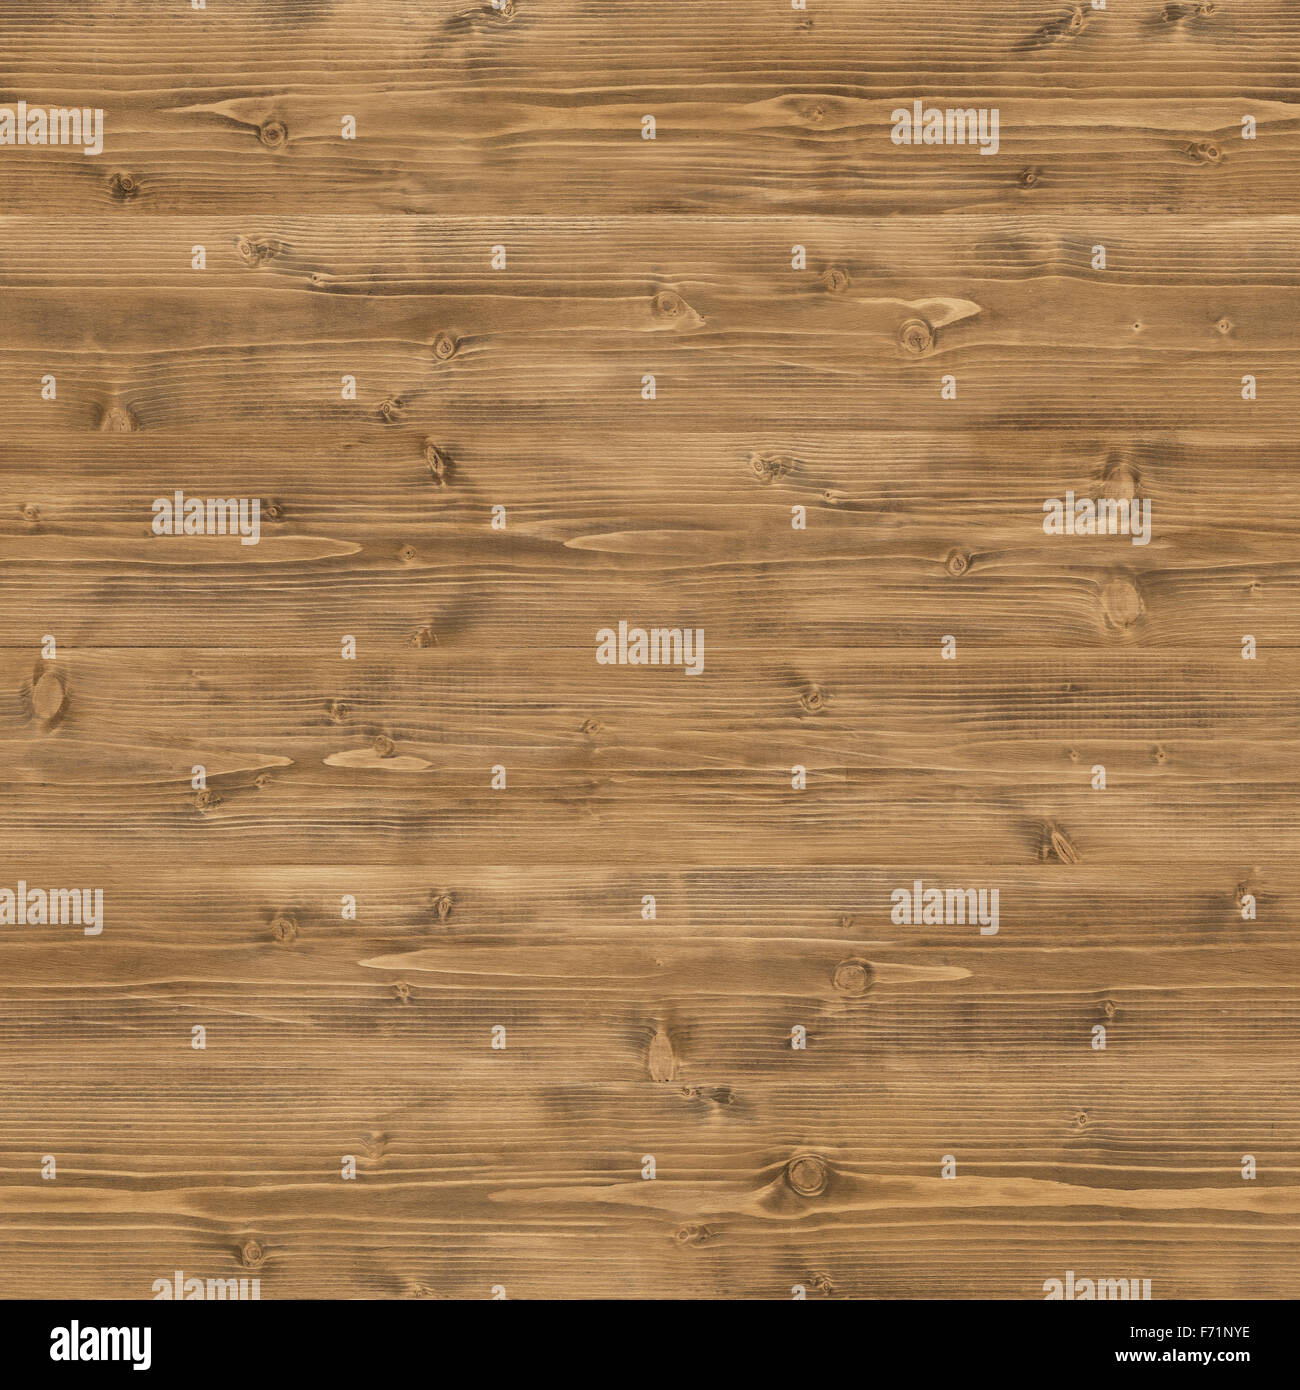 Seamless Rustic Brown Wood Texture Can Be Used As Floor Wall Pattern Or Table Background